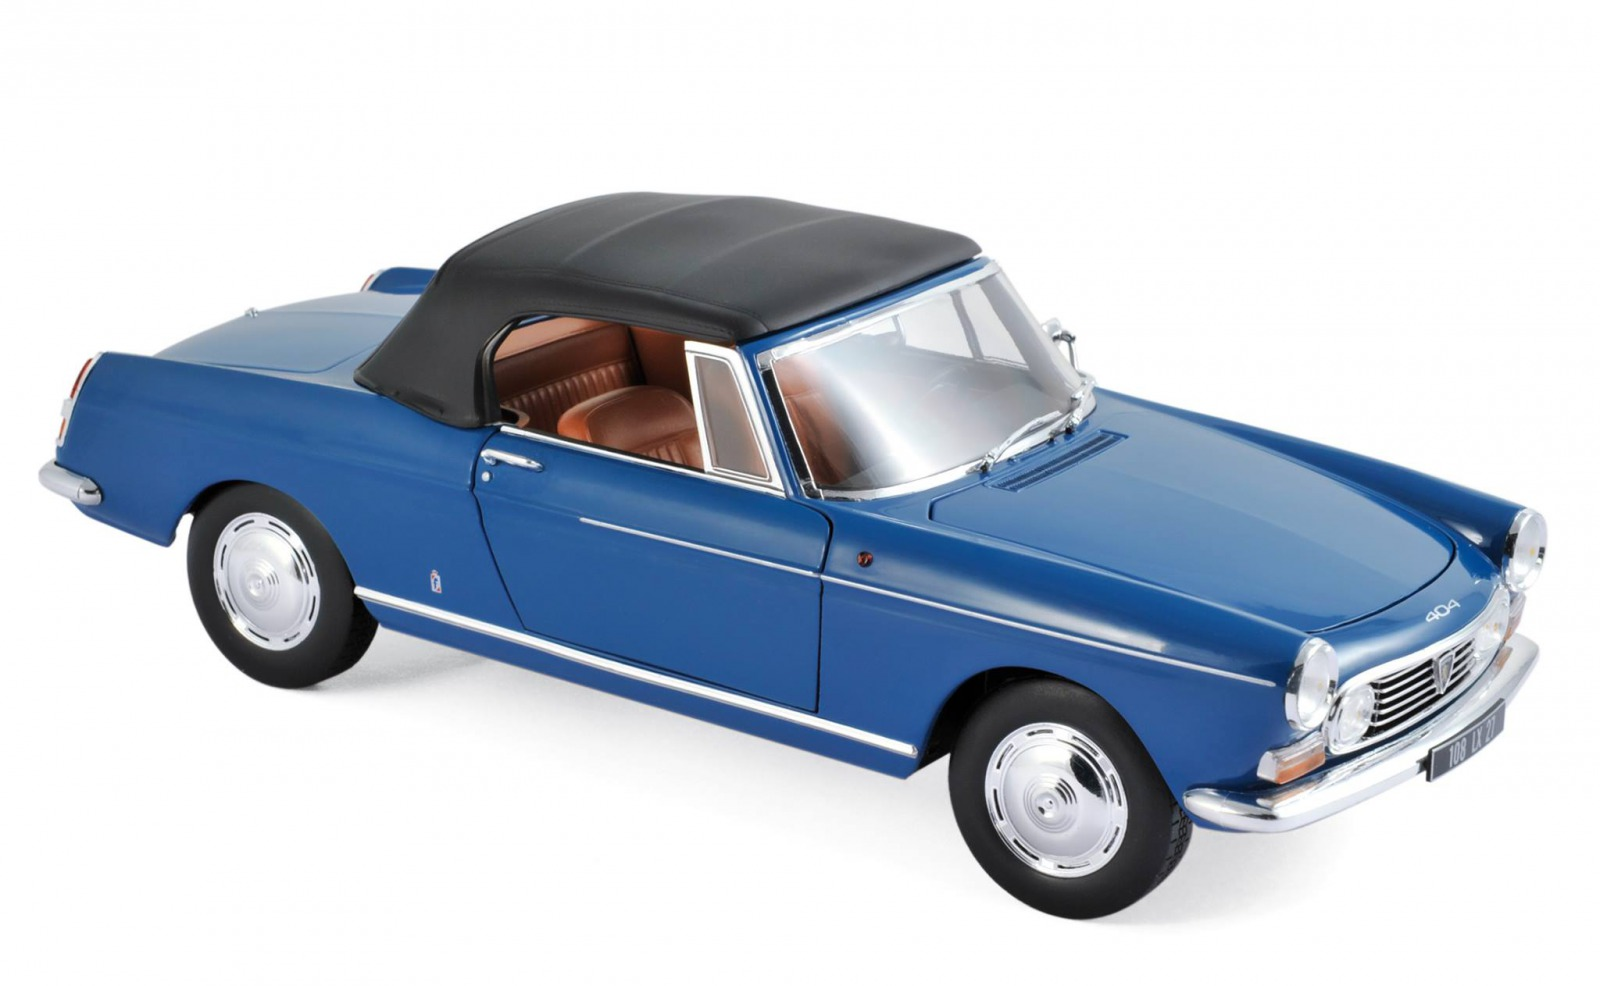 Norev 1:18 1967年モデル プジョー 404 カブリオ ブルーPEUGEOT - 404 CABRIOLET 1967 1/18 blue by Norev NEW